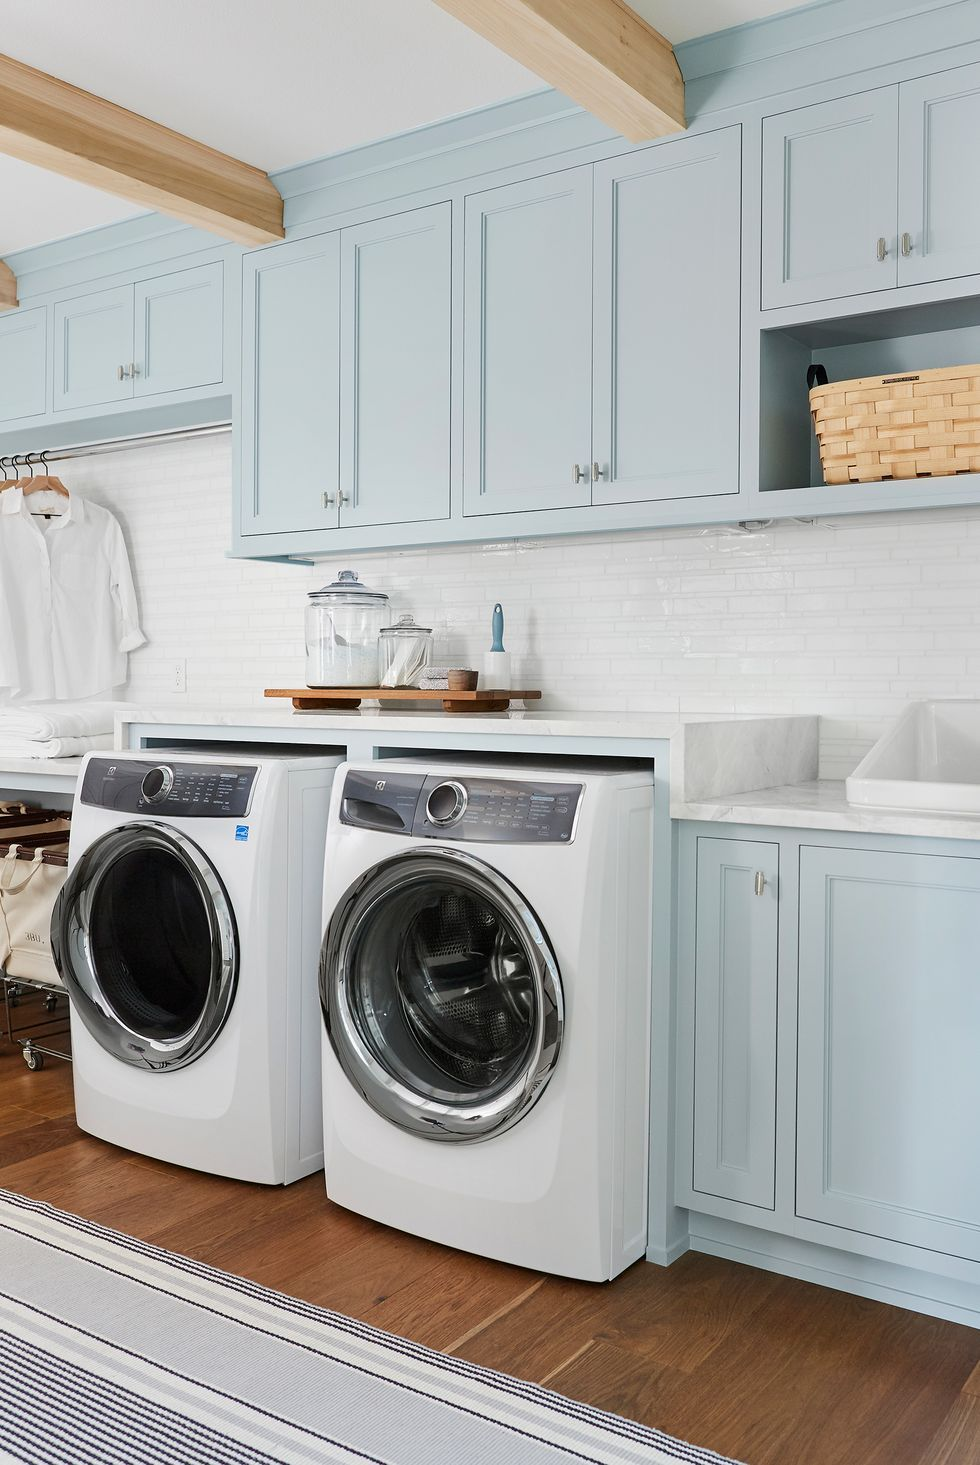 29 Small Laundry Room Ideas - Small Laundry Room Storage Tips